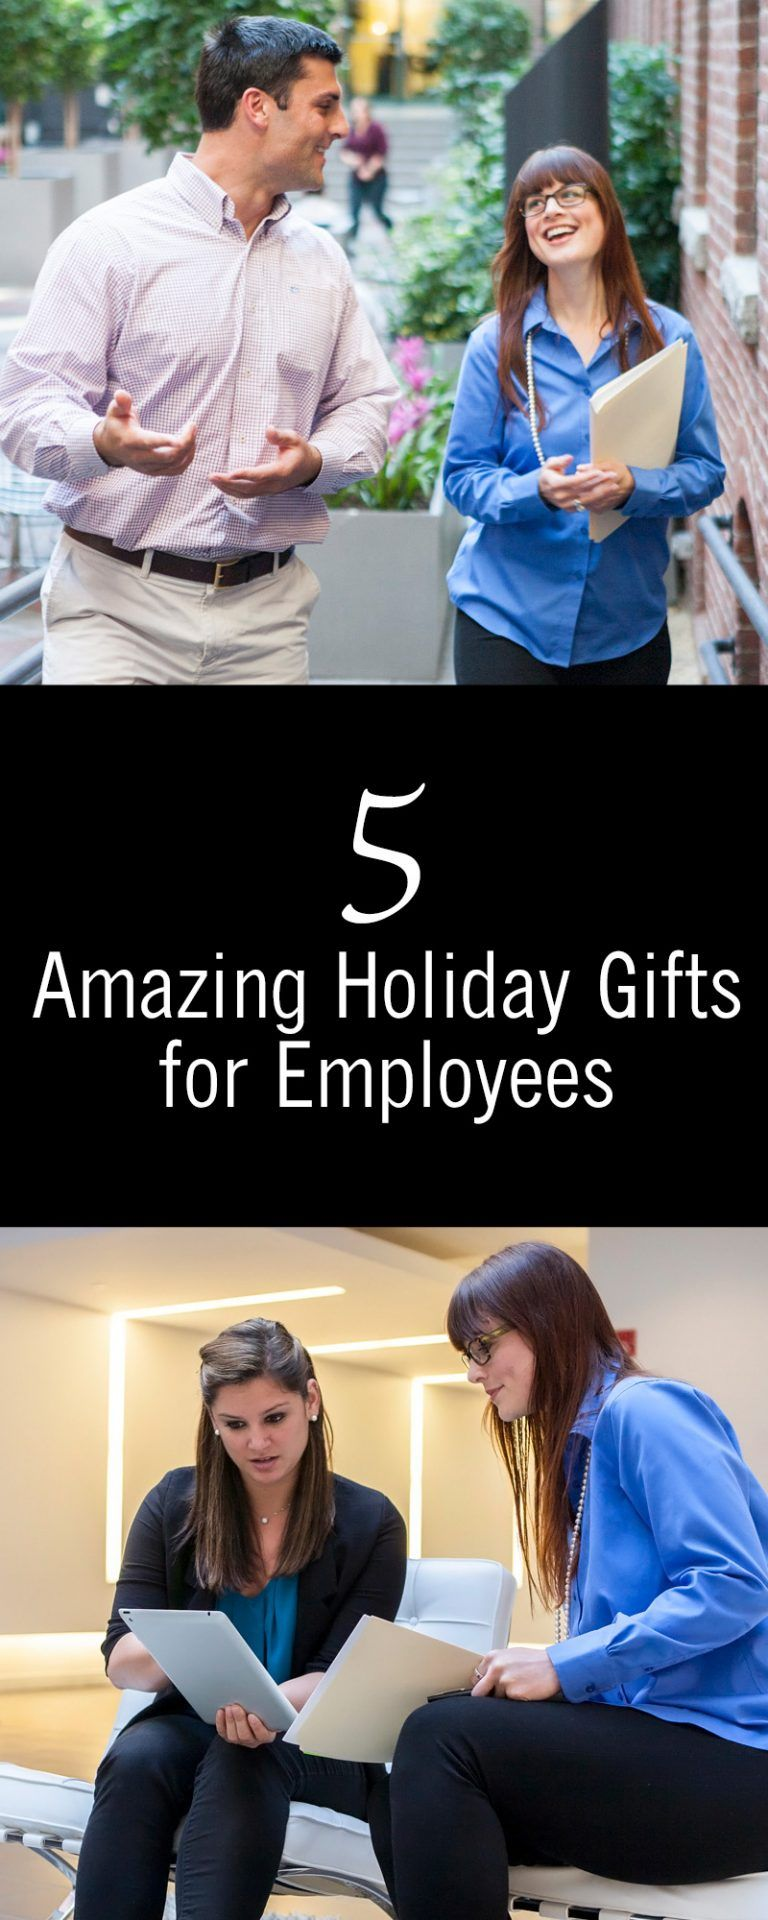 5 Amazing Holiday Gifts for Employees | Sabrina's Admin Services